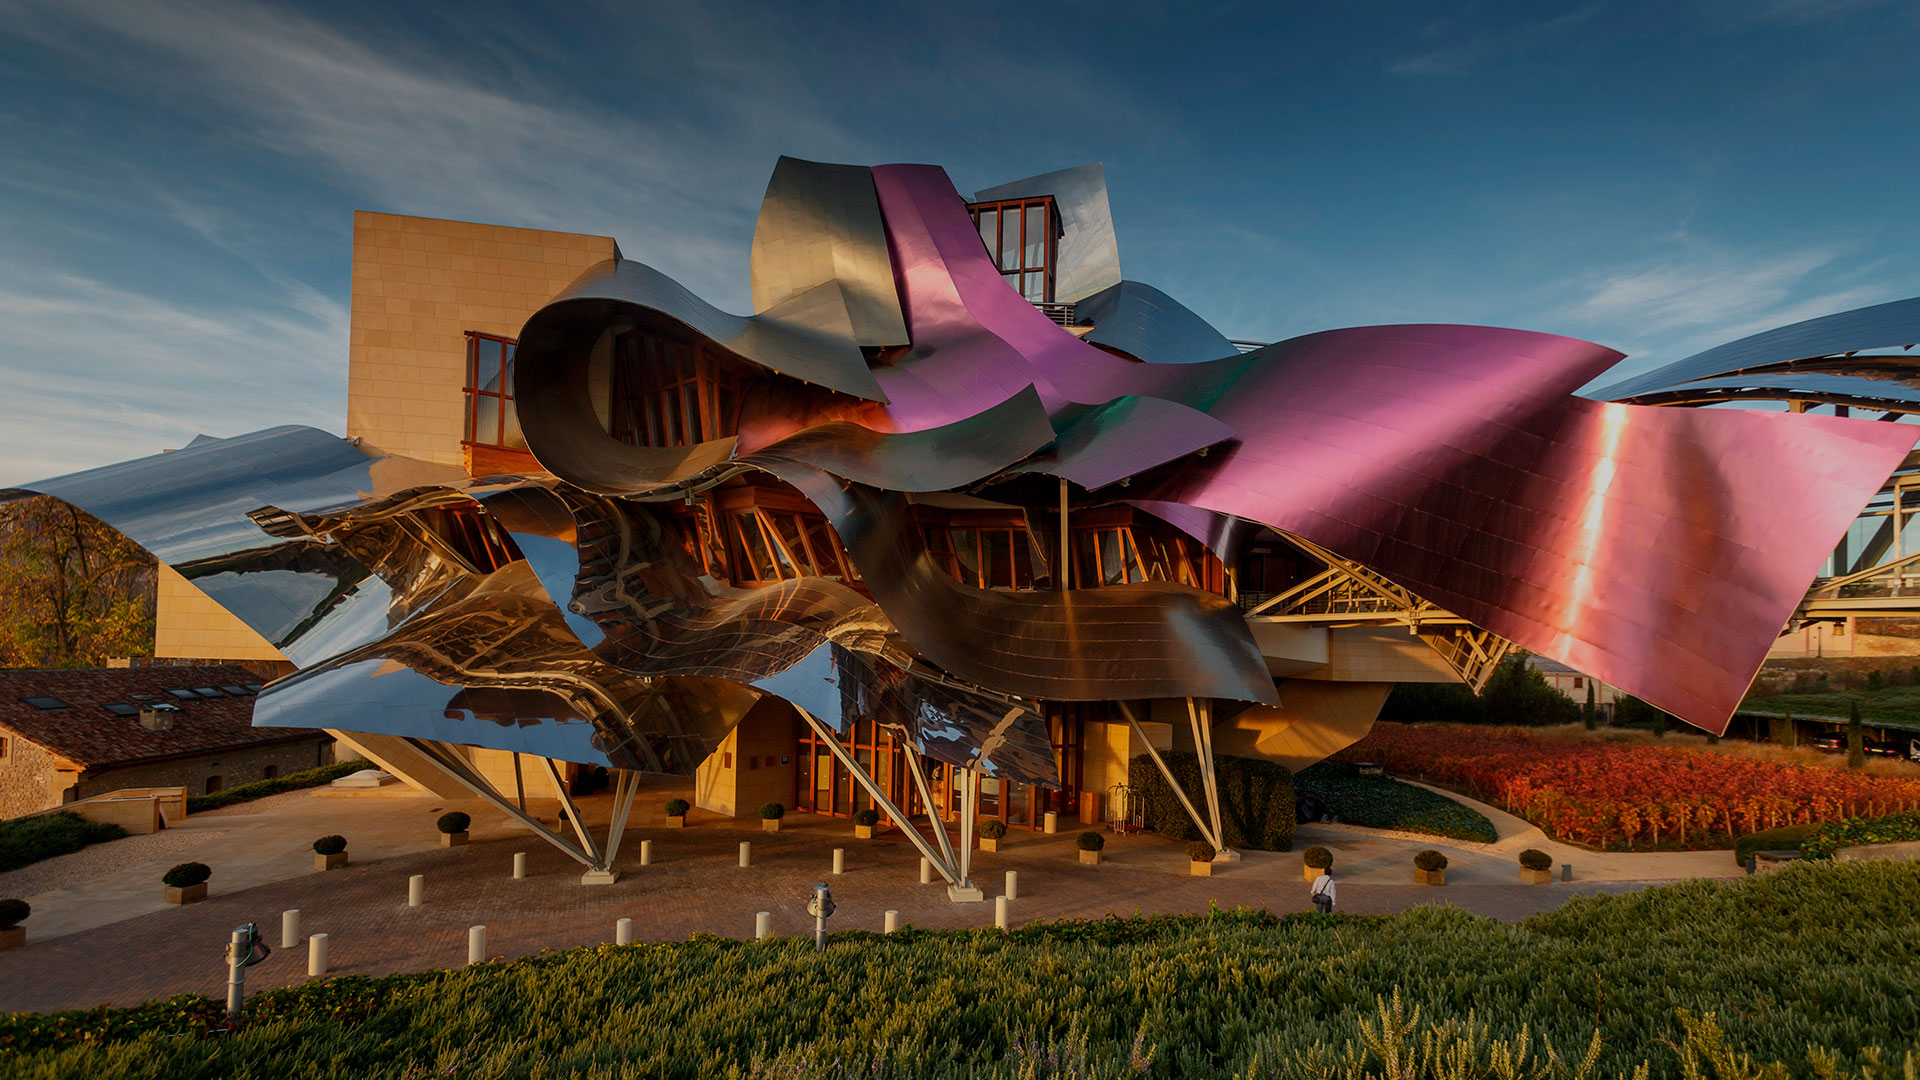 caves marques de riscal